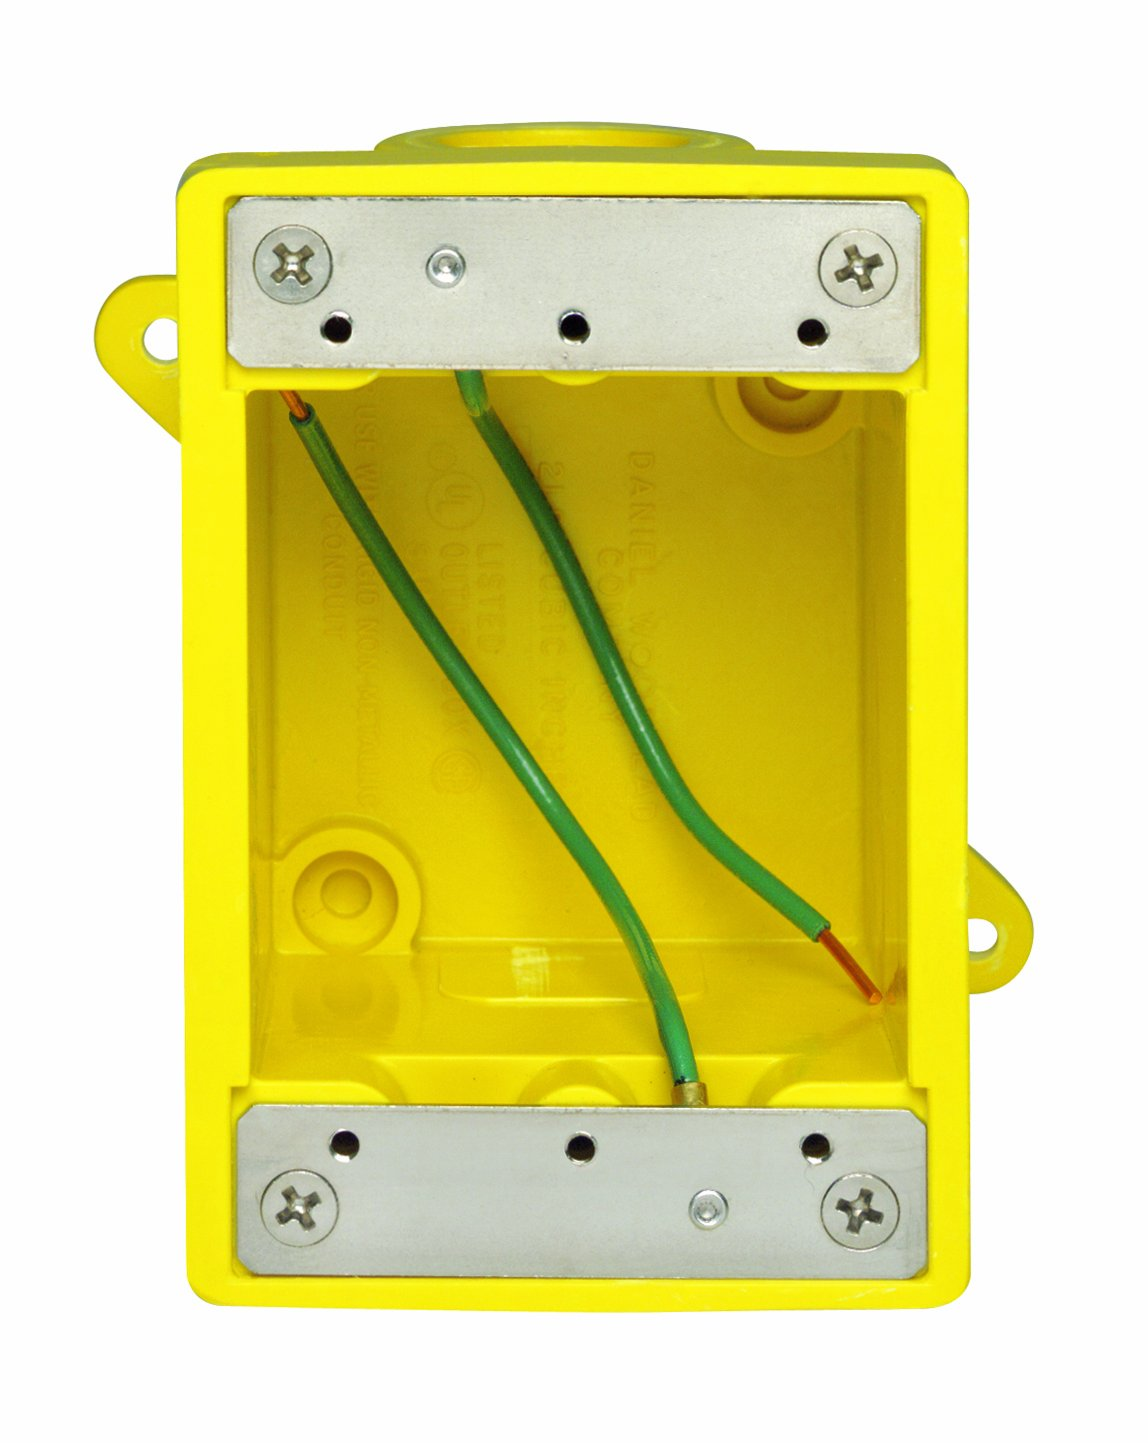 Leviton 452CR Fd Box 2 Ko Openings 1/2-Inch for Straight, Locking Receptacle, Wetguard IP66, Yellow by Leviton